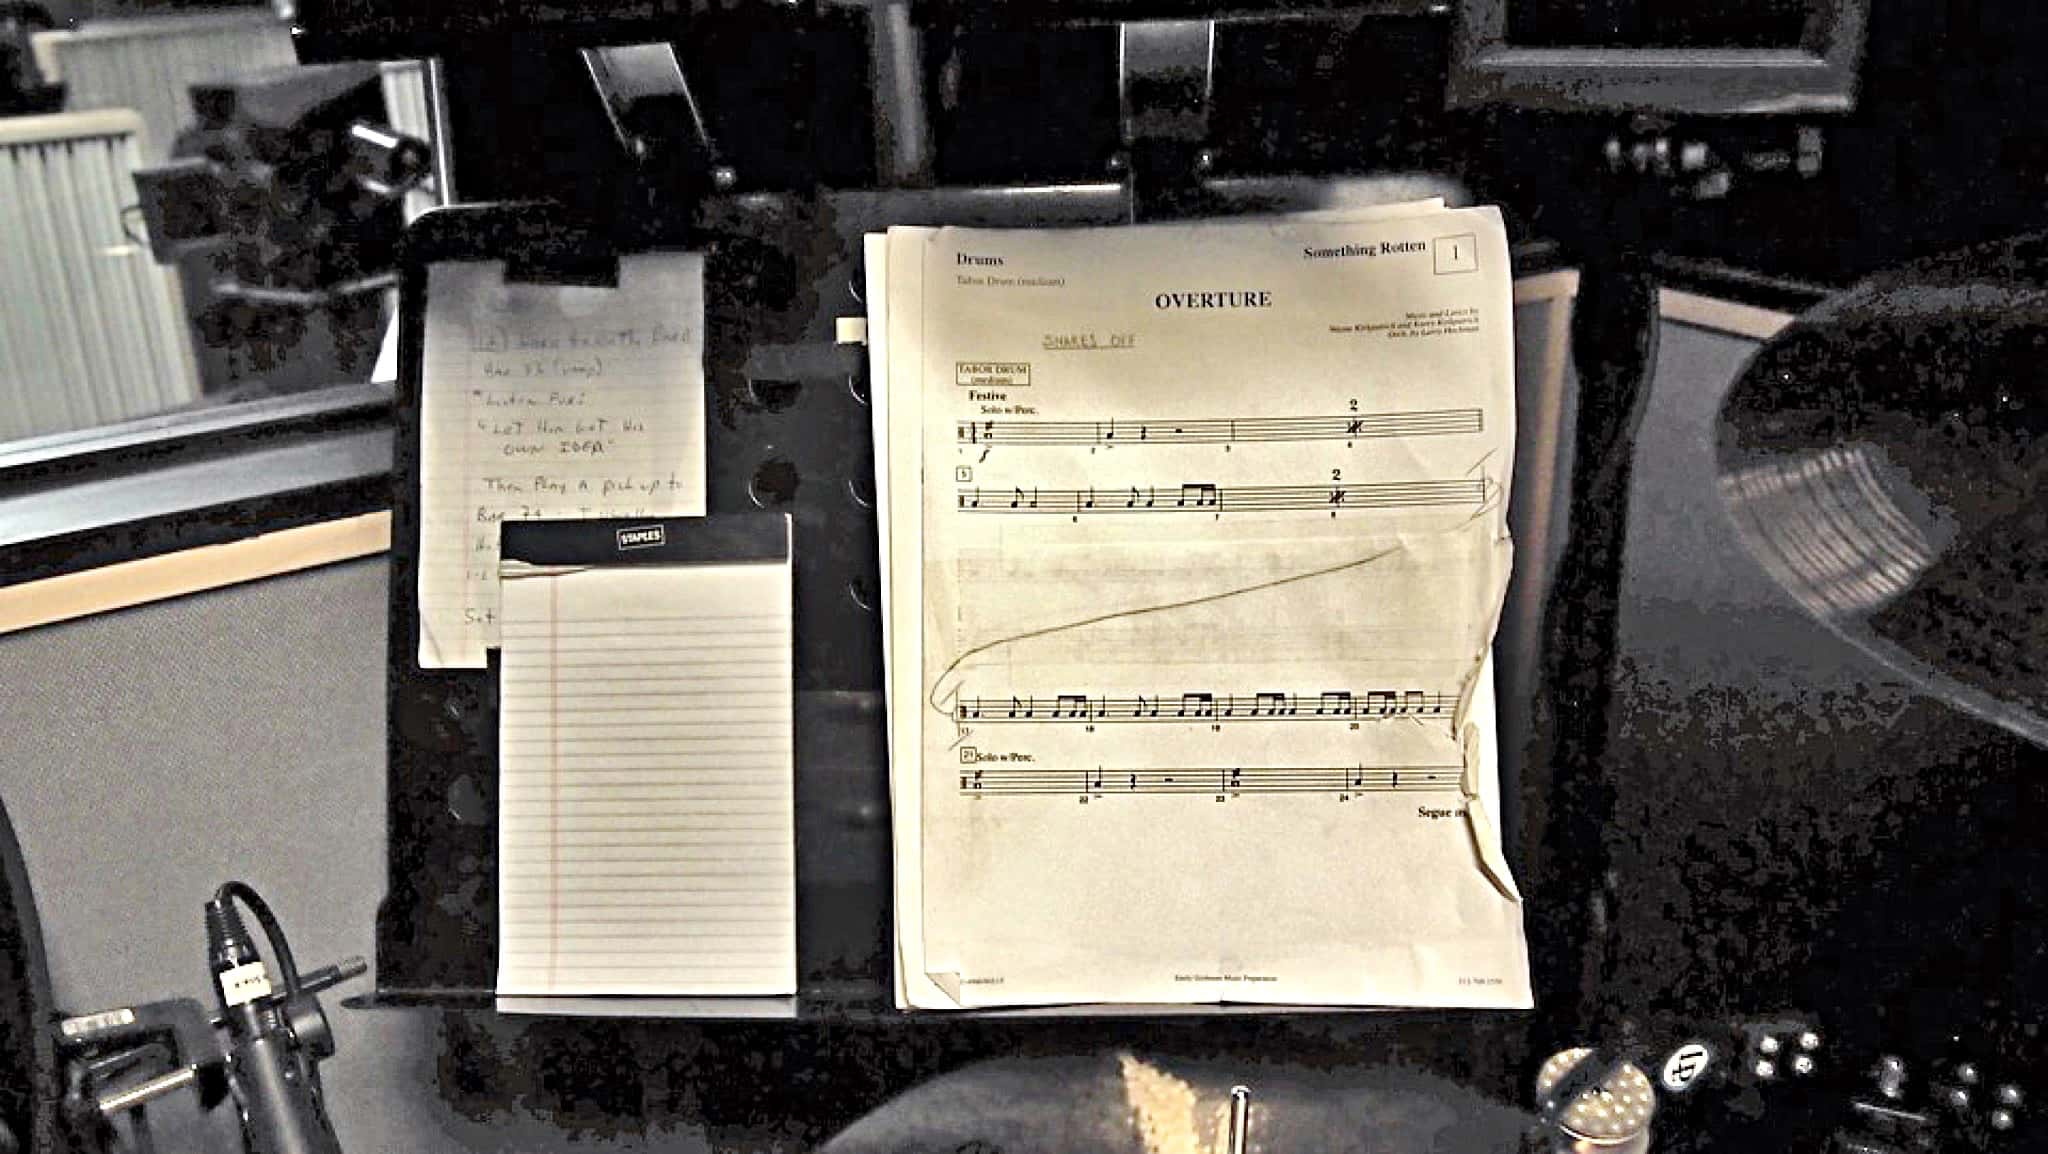 Perry Cavari's drum set setup for the Broadway production of Something Rotten at the St James Theatre.